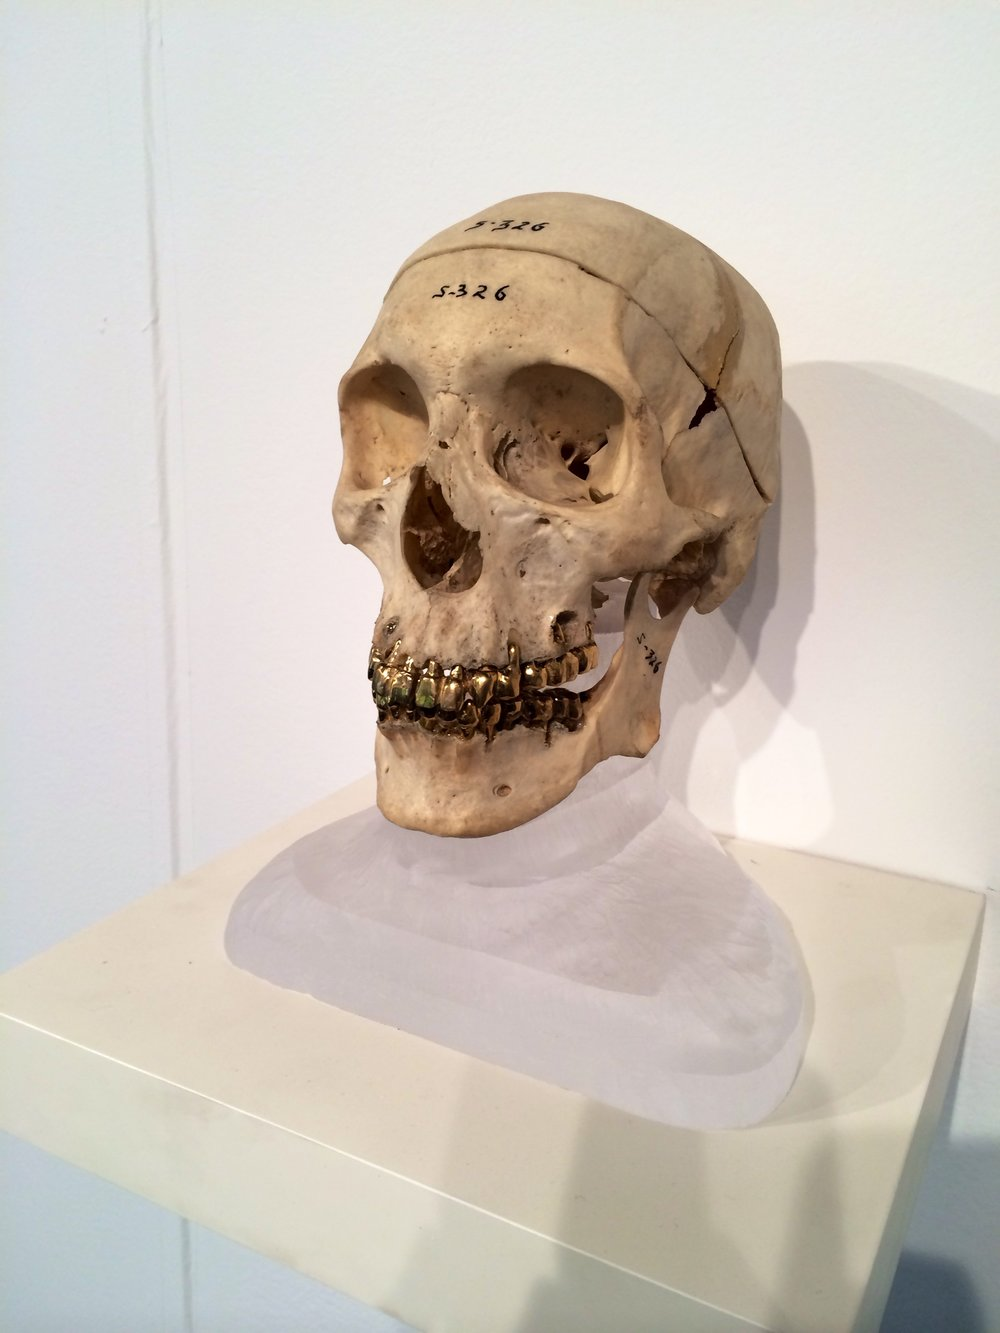 "Jefferson Pinder  Head of a Man   2015 skull, 24-carat gold plate, frosted plastic base 14"" x 10"" x 8"""